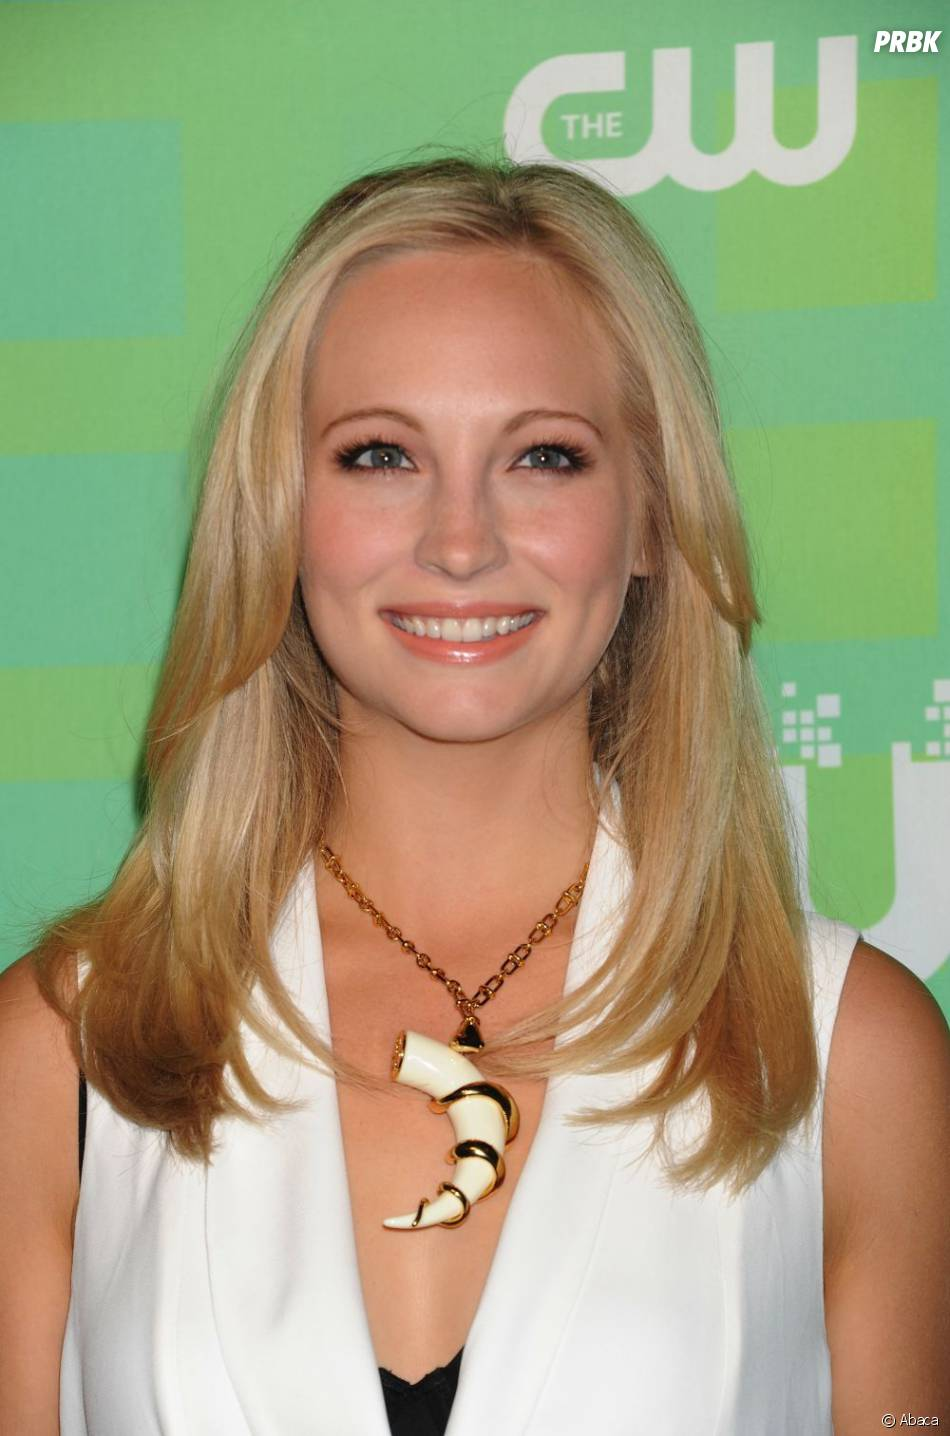 ¿Cuánto mide Candice Accola? - Real height 205222-candice-accola-950x0-1